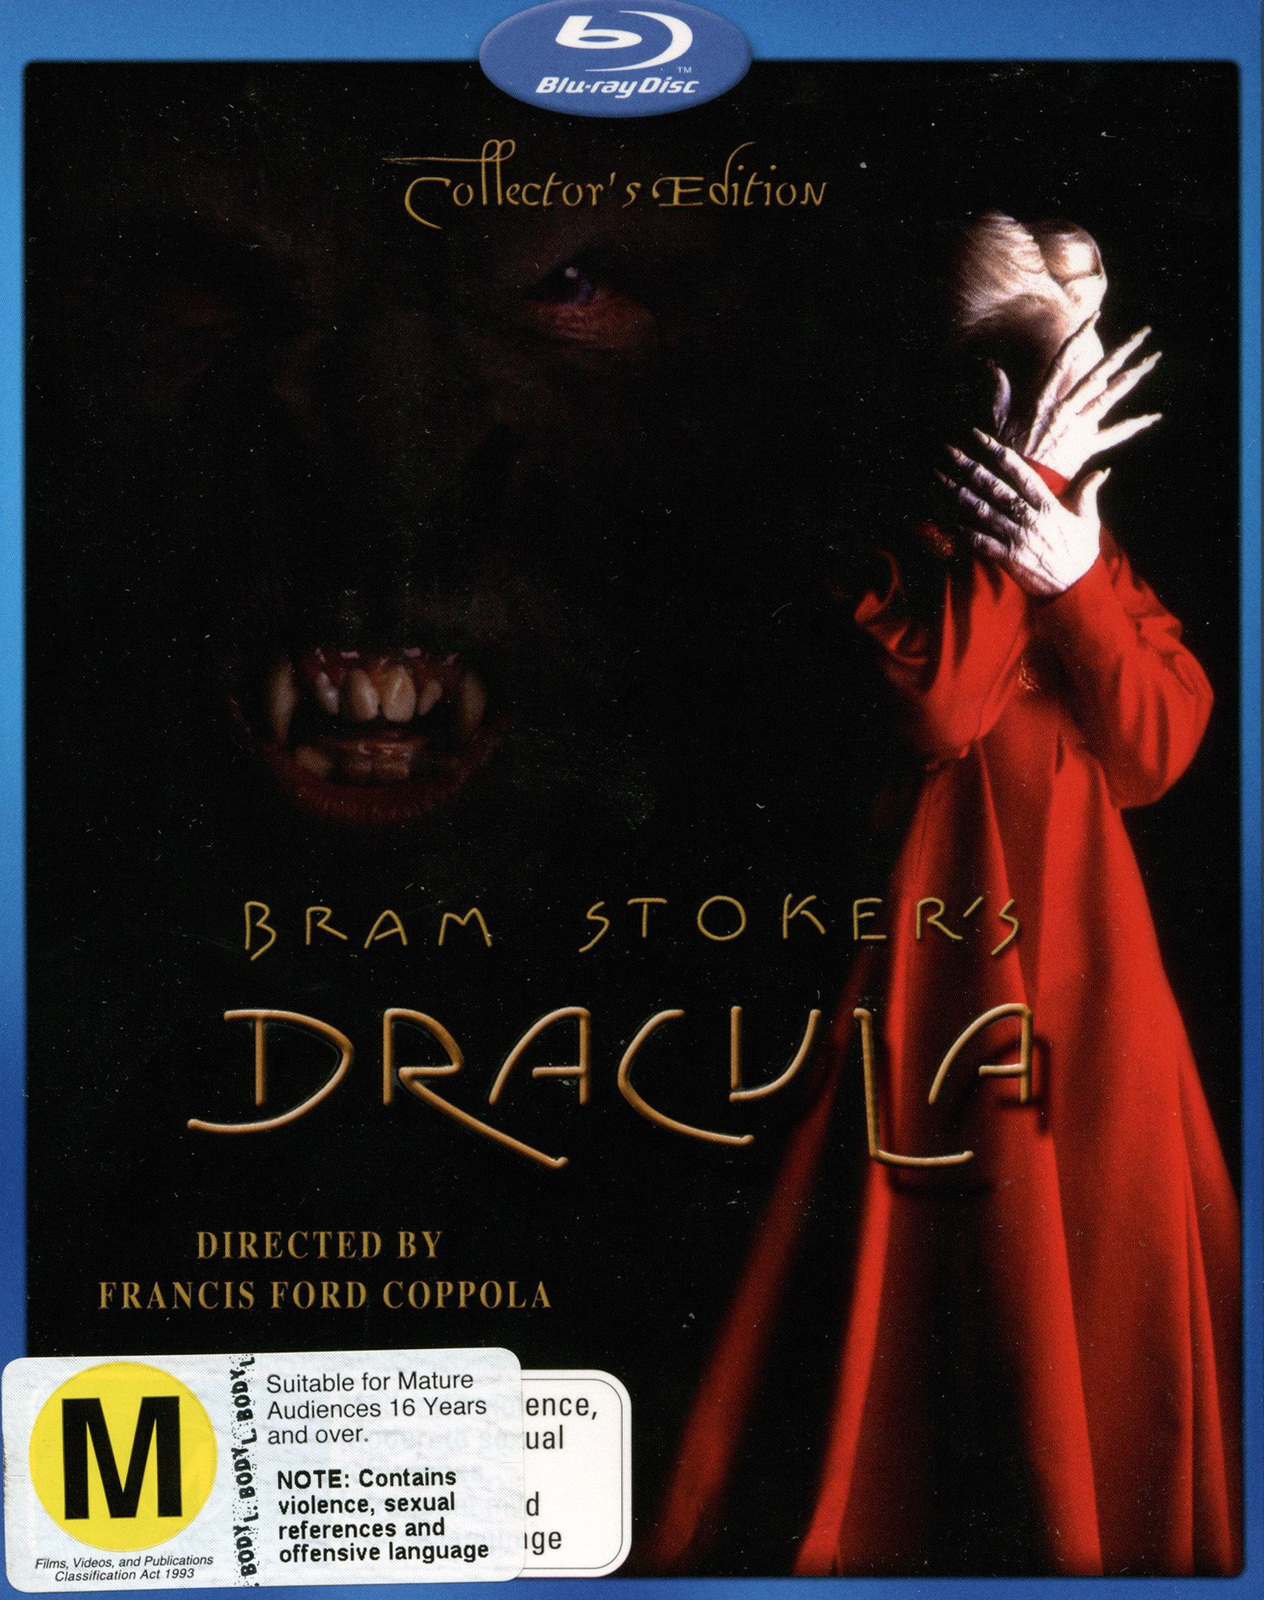 Bram Stoker's Dracula on Blu-ray image